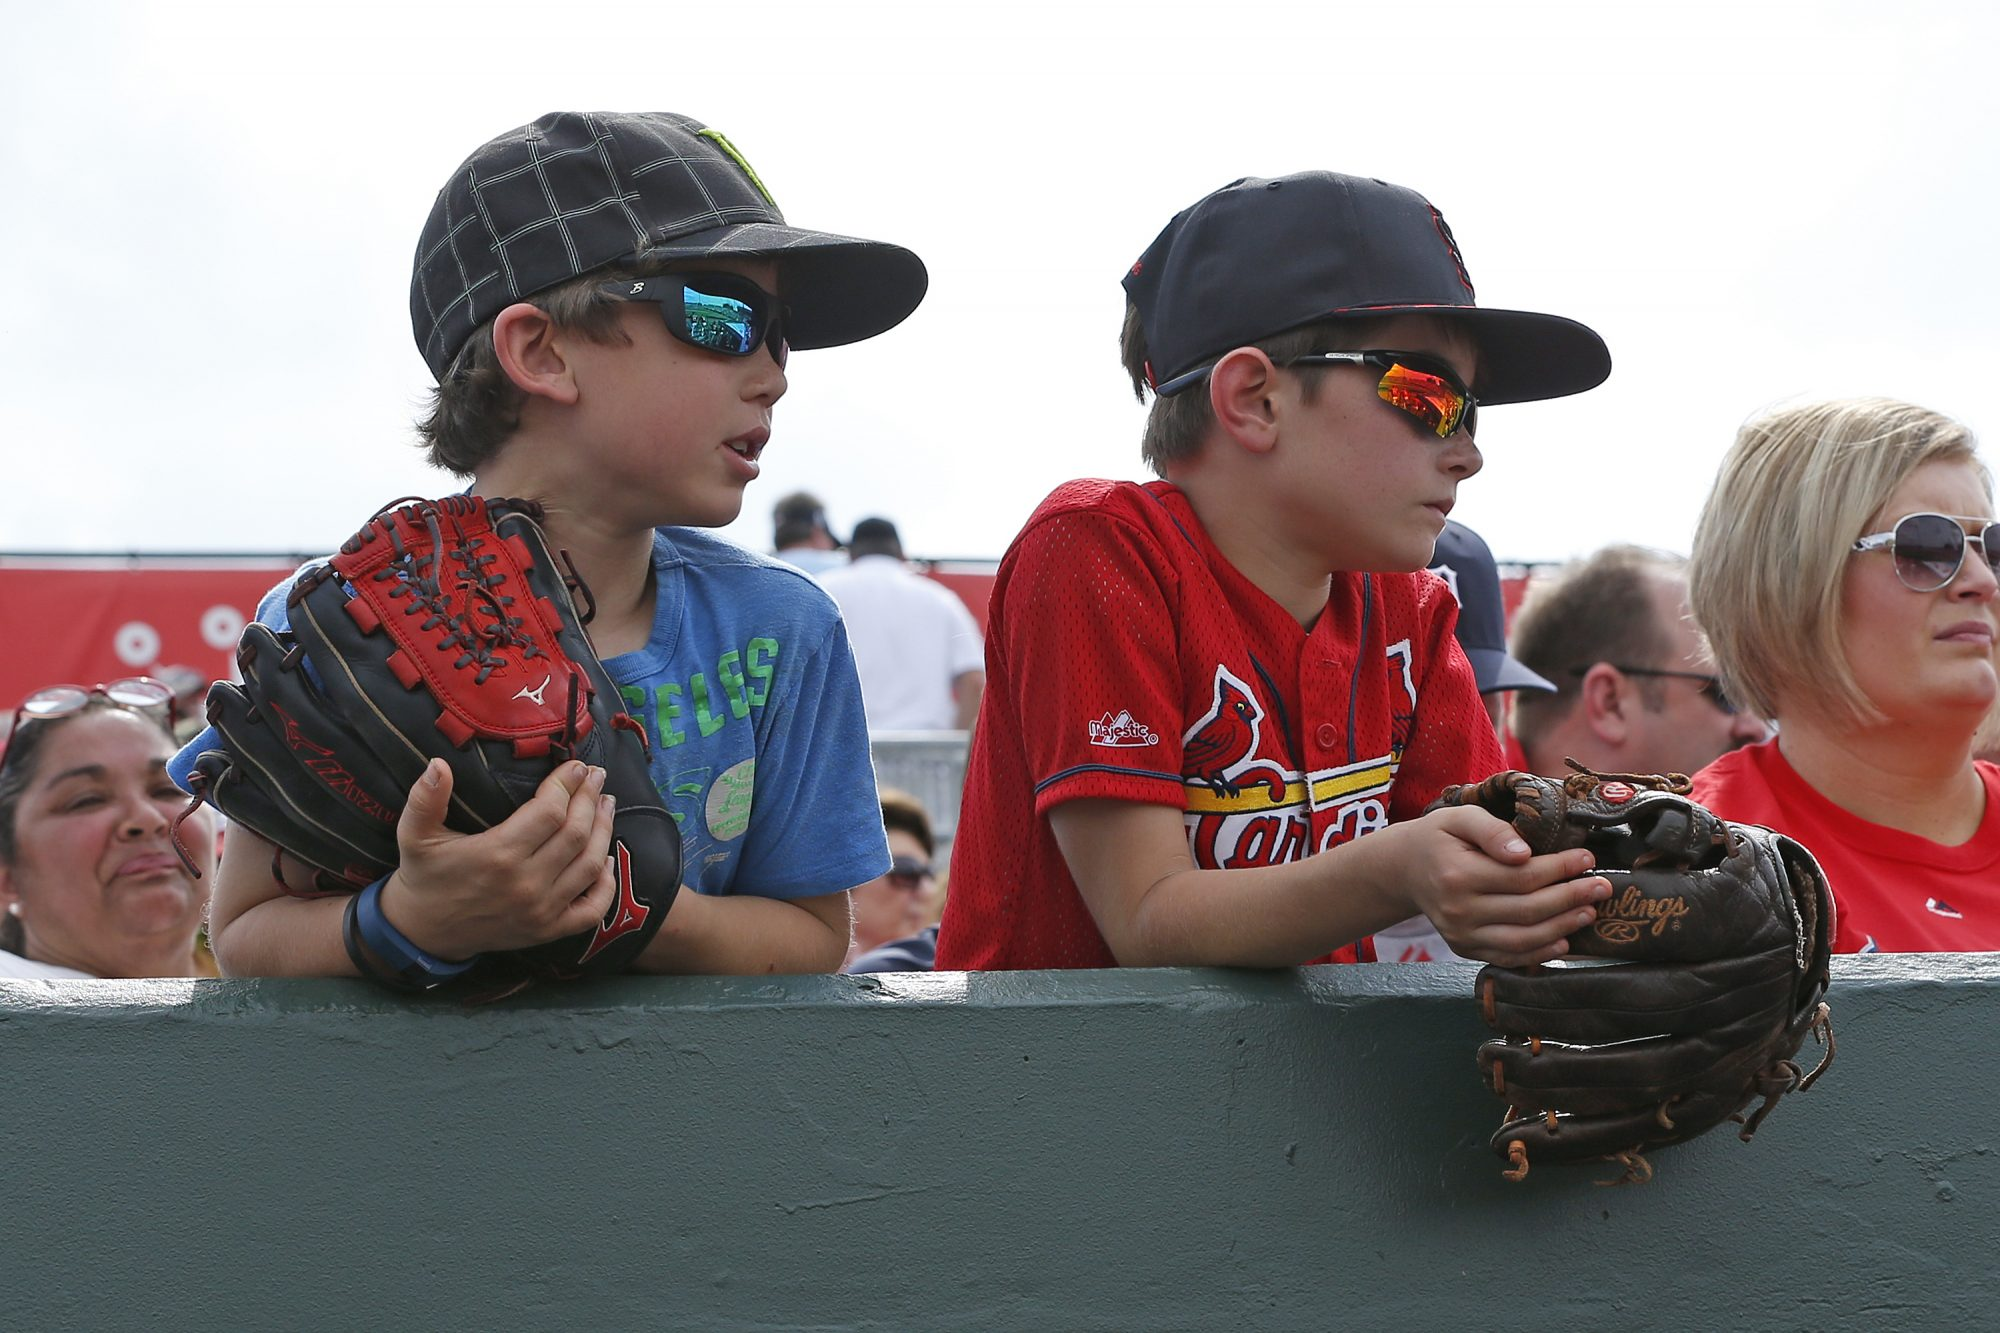 Cardinals Fans at Baseball Game